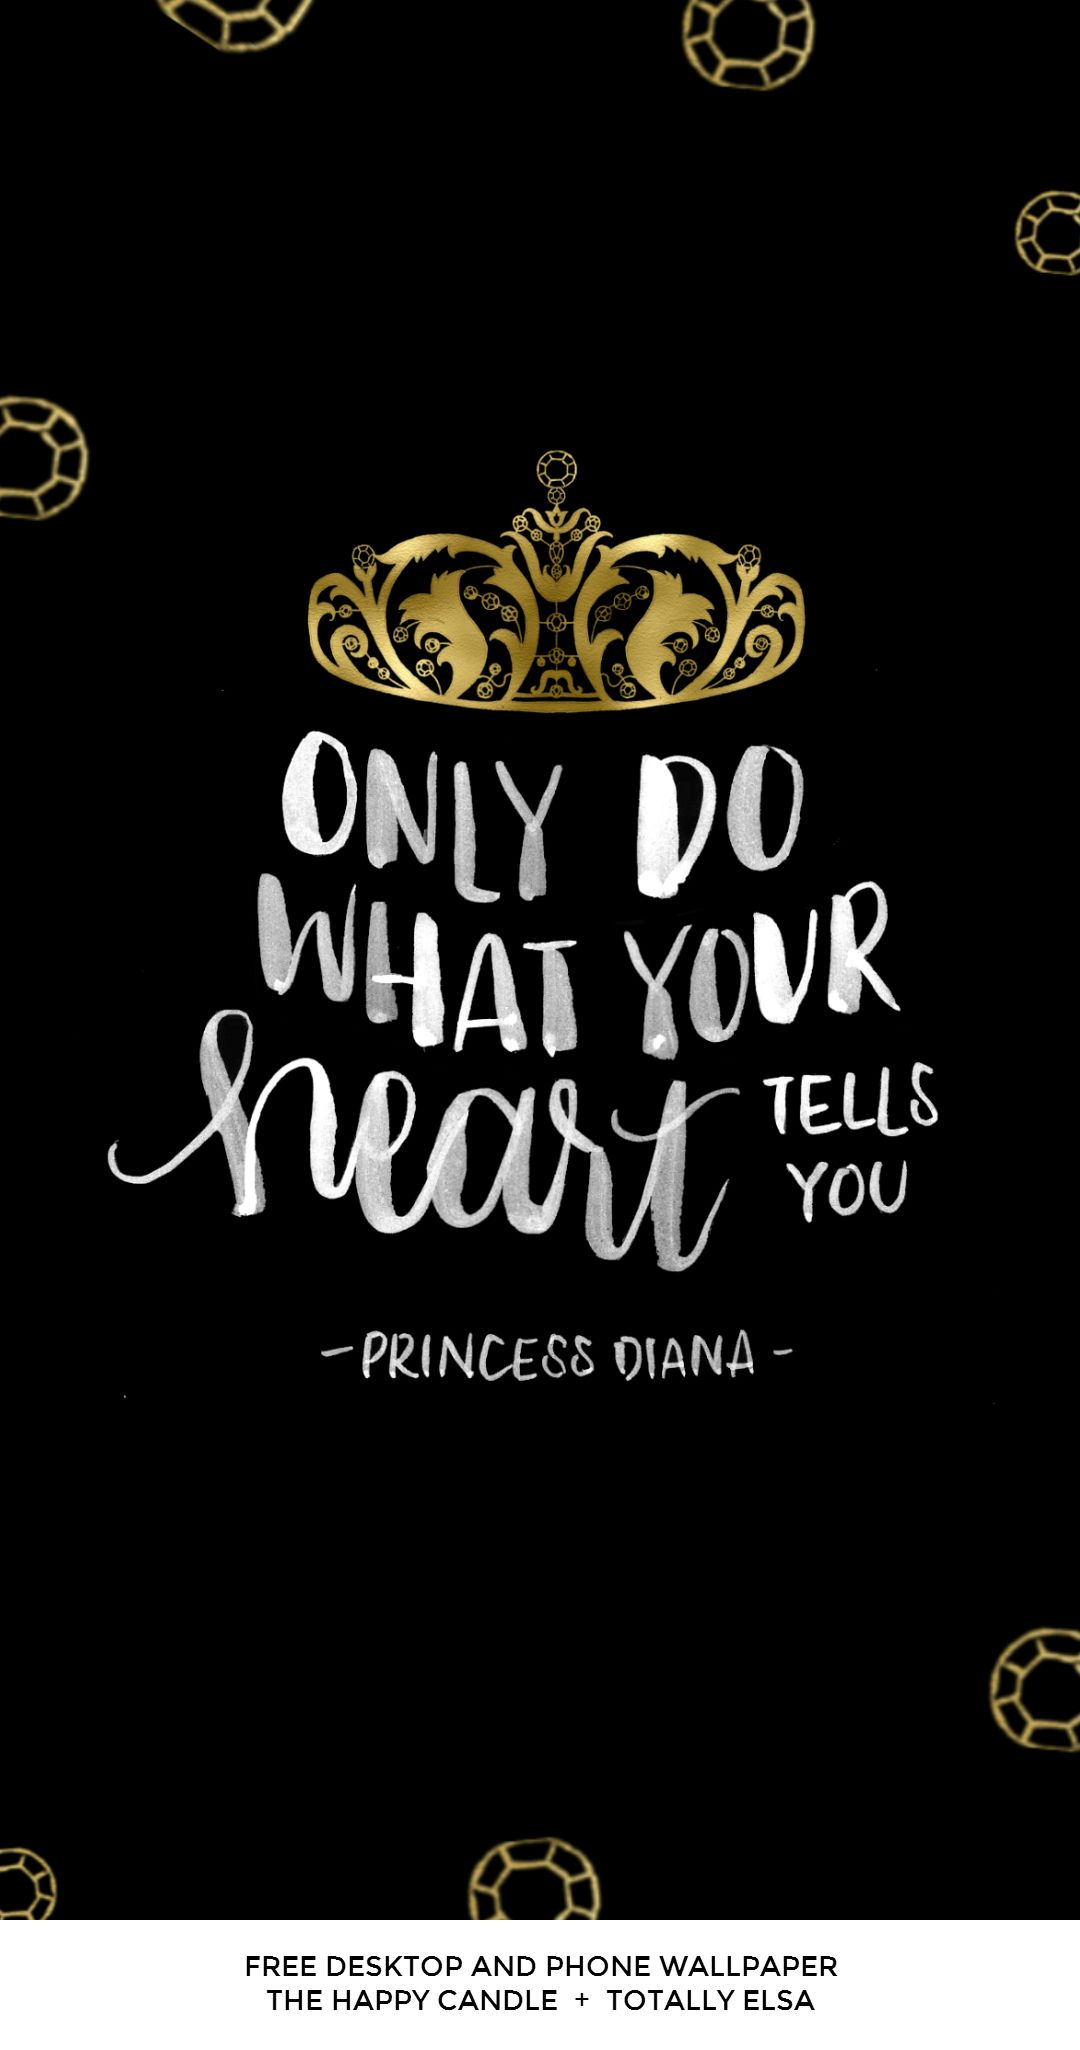 A free desktop and phone wallpaper with a quote from Princess Diana